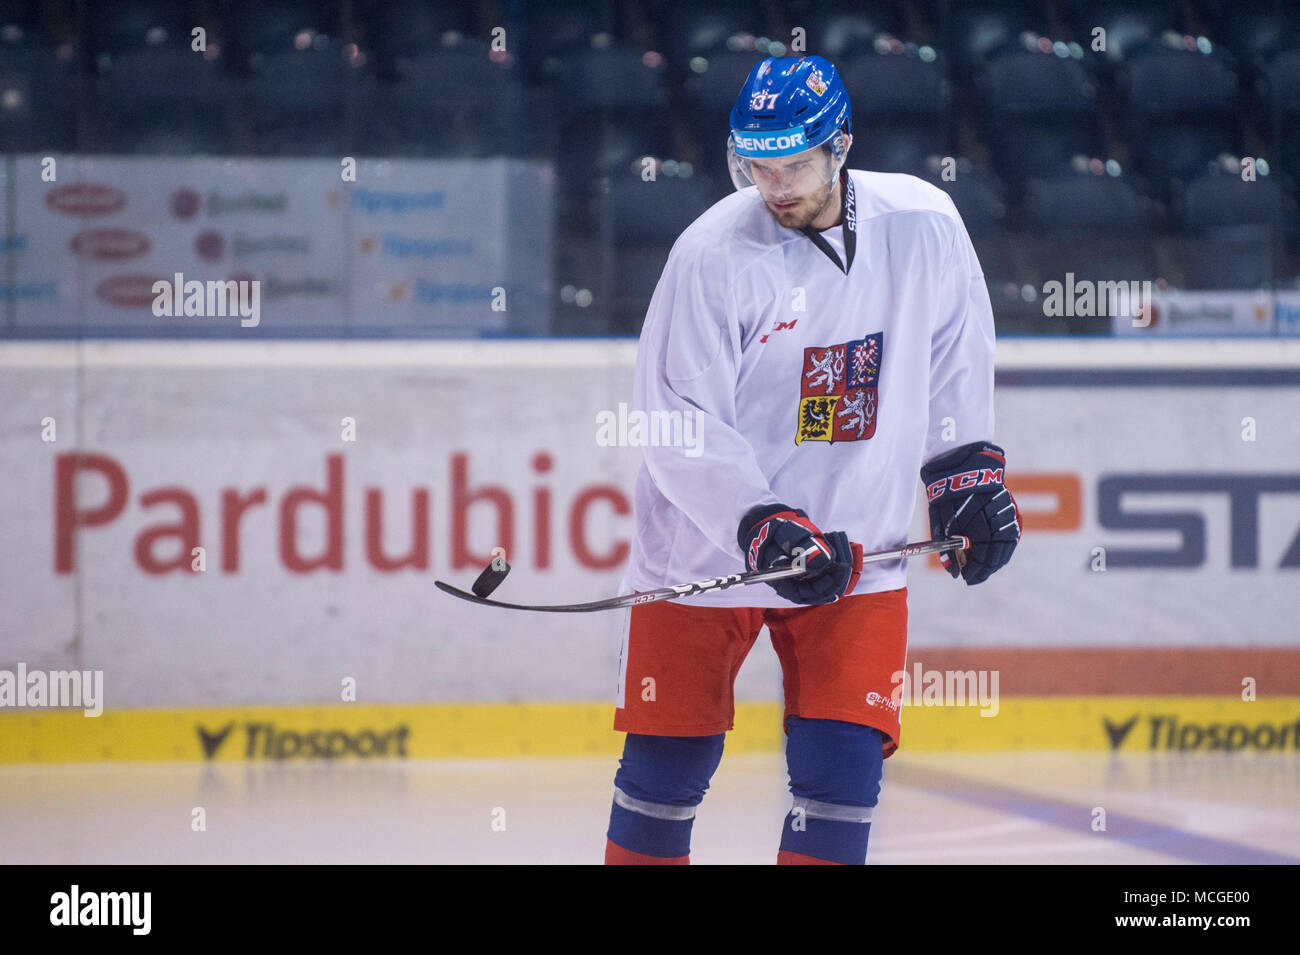 Pardubice Czech Republic 16th Apr 2018 Czech Hockey Player